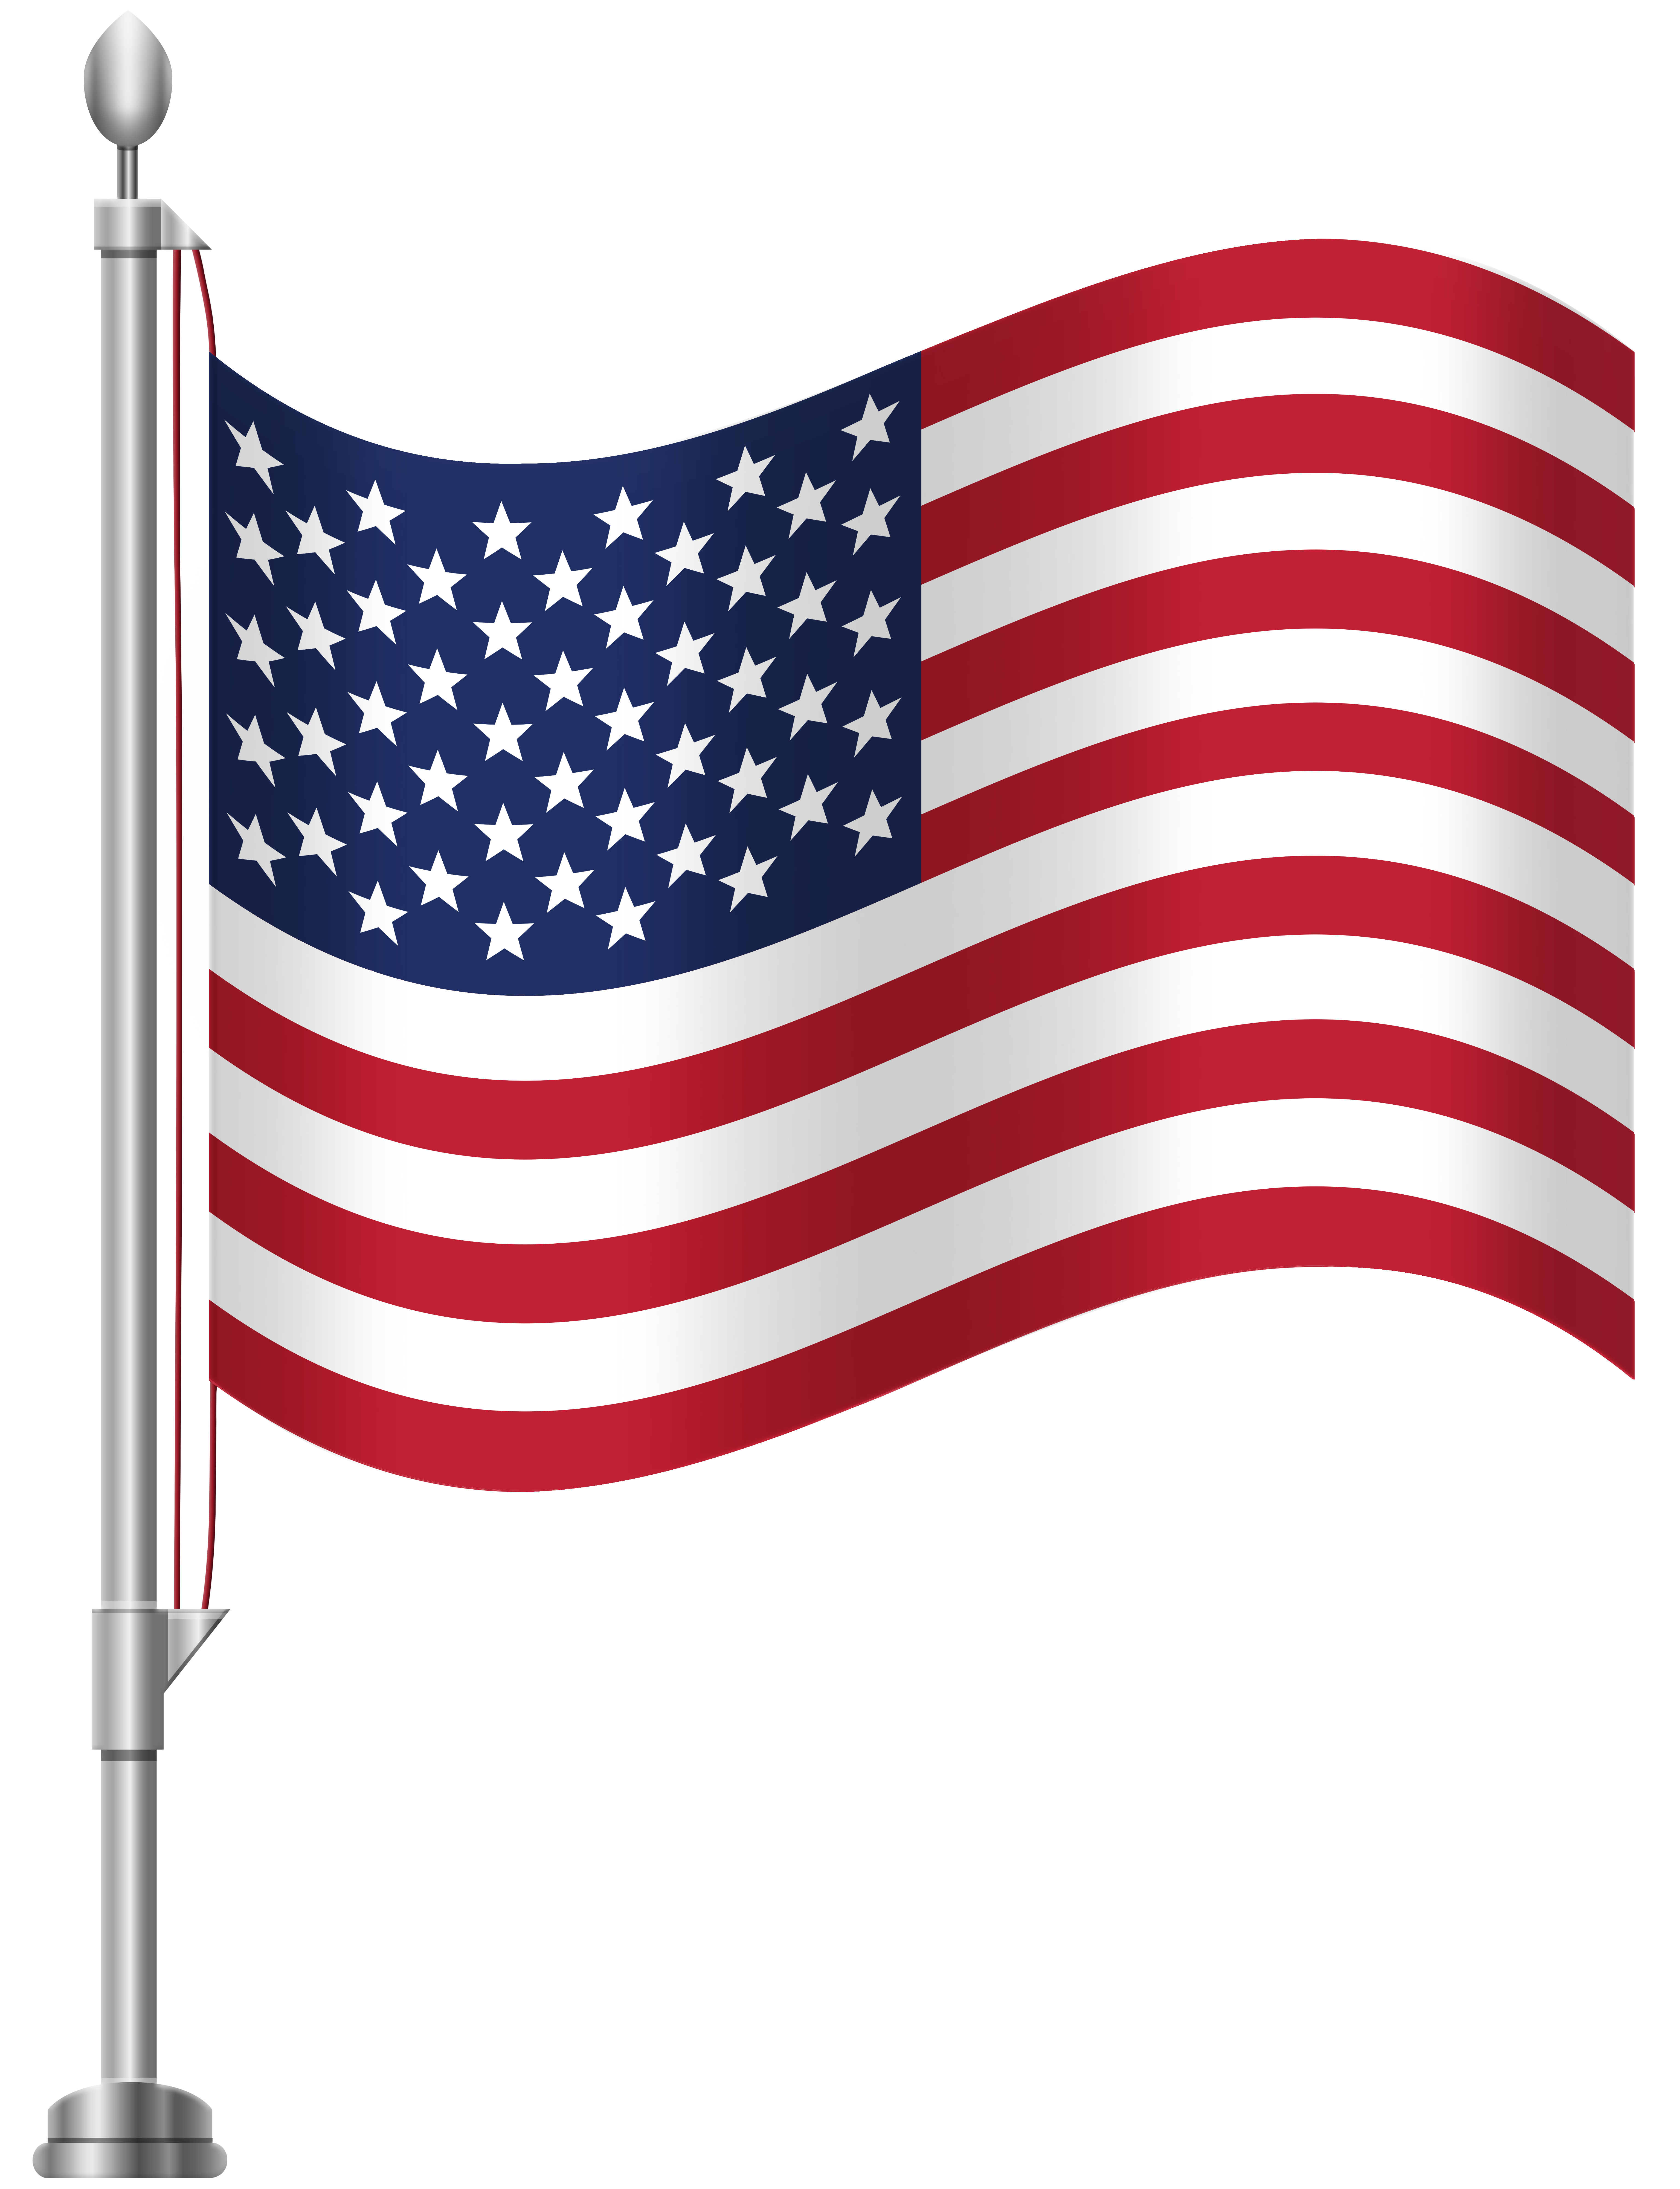 american flag pole png - photo #17